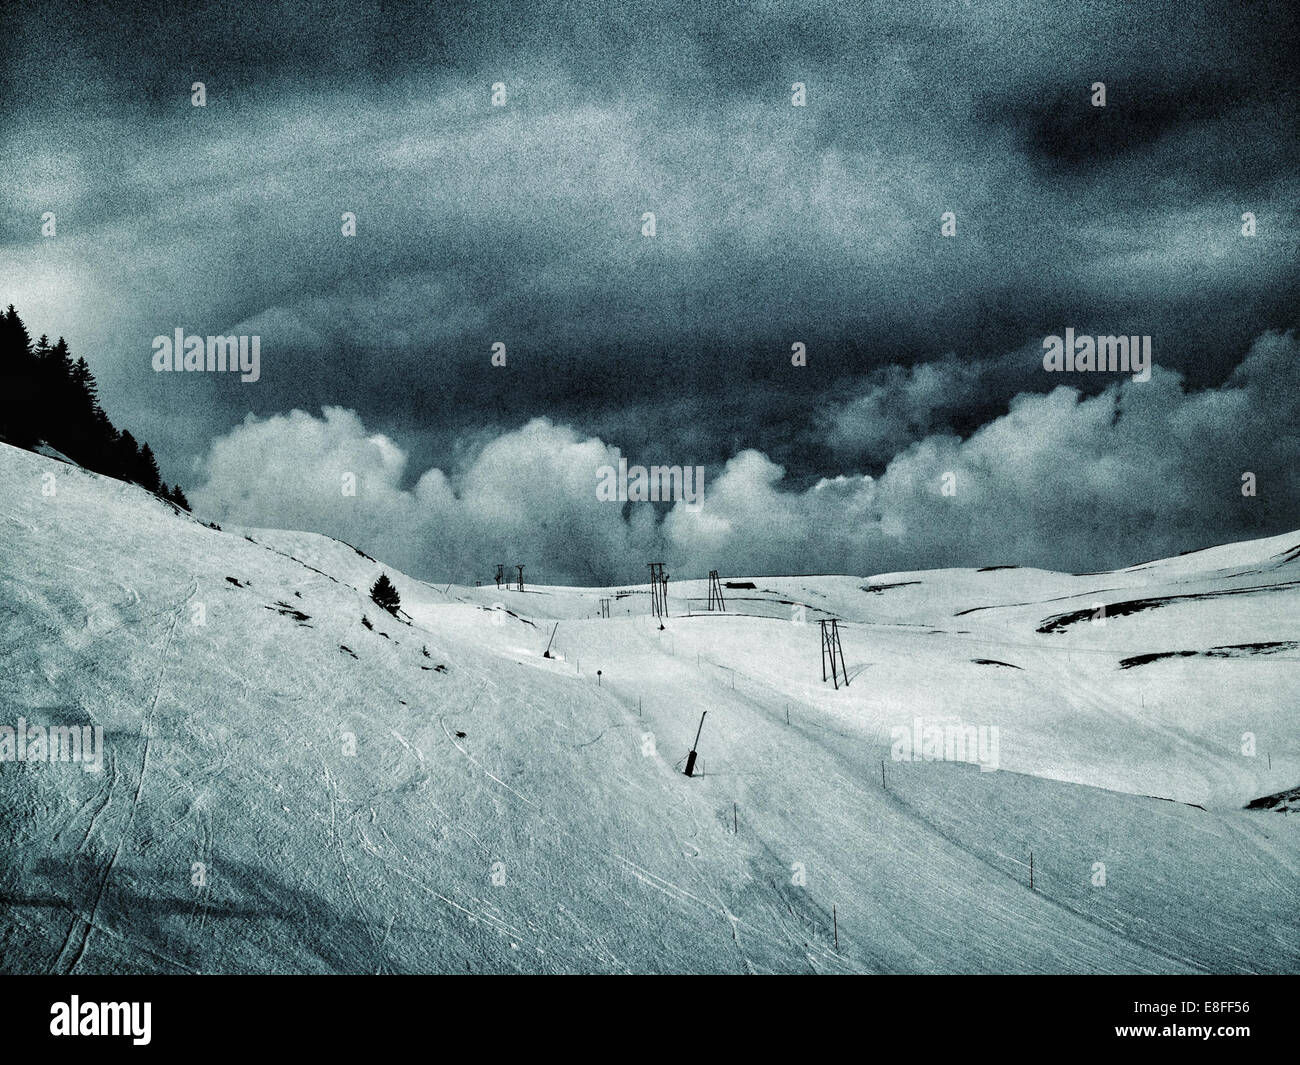 Ski slope in the mountains - Stock Image